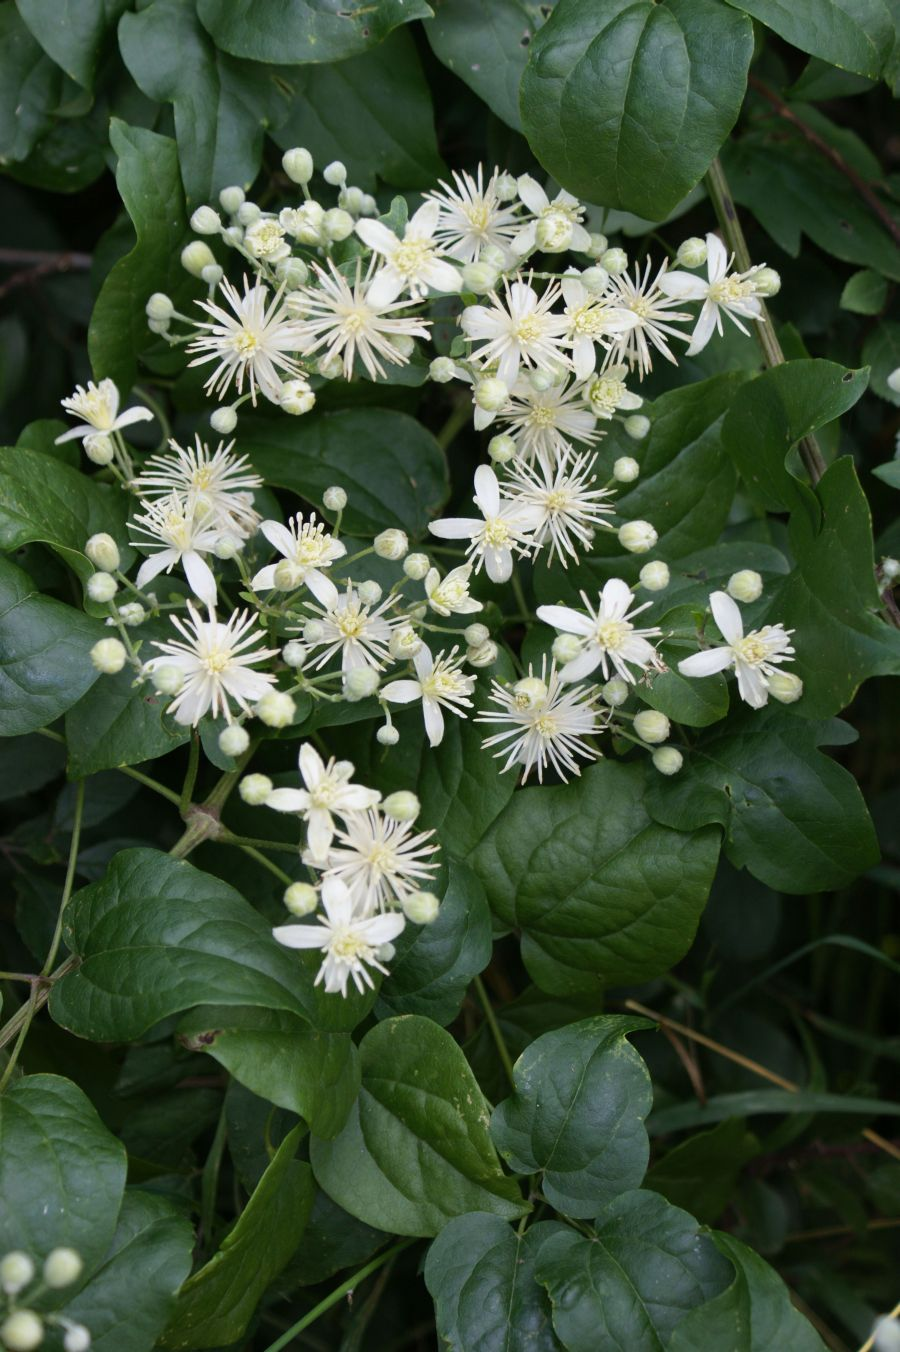 Clematis Vit alba, travellers joy, old mans beard clump of flower